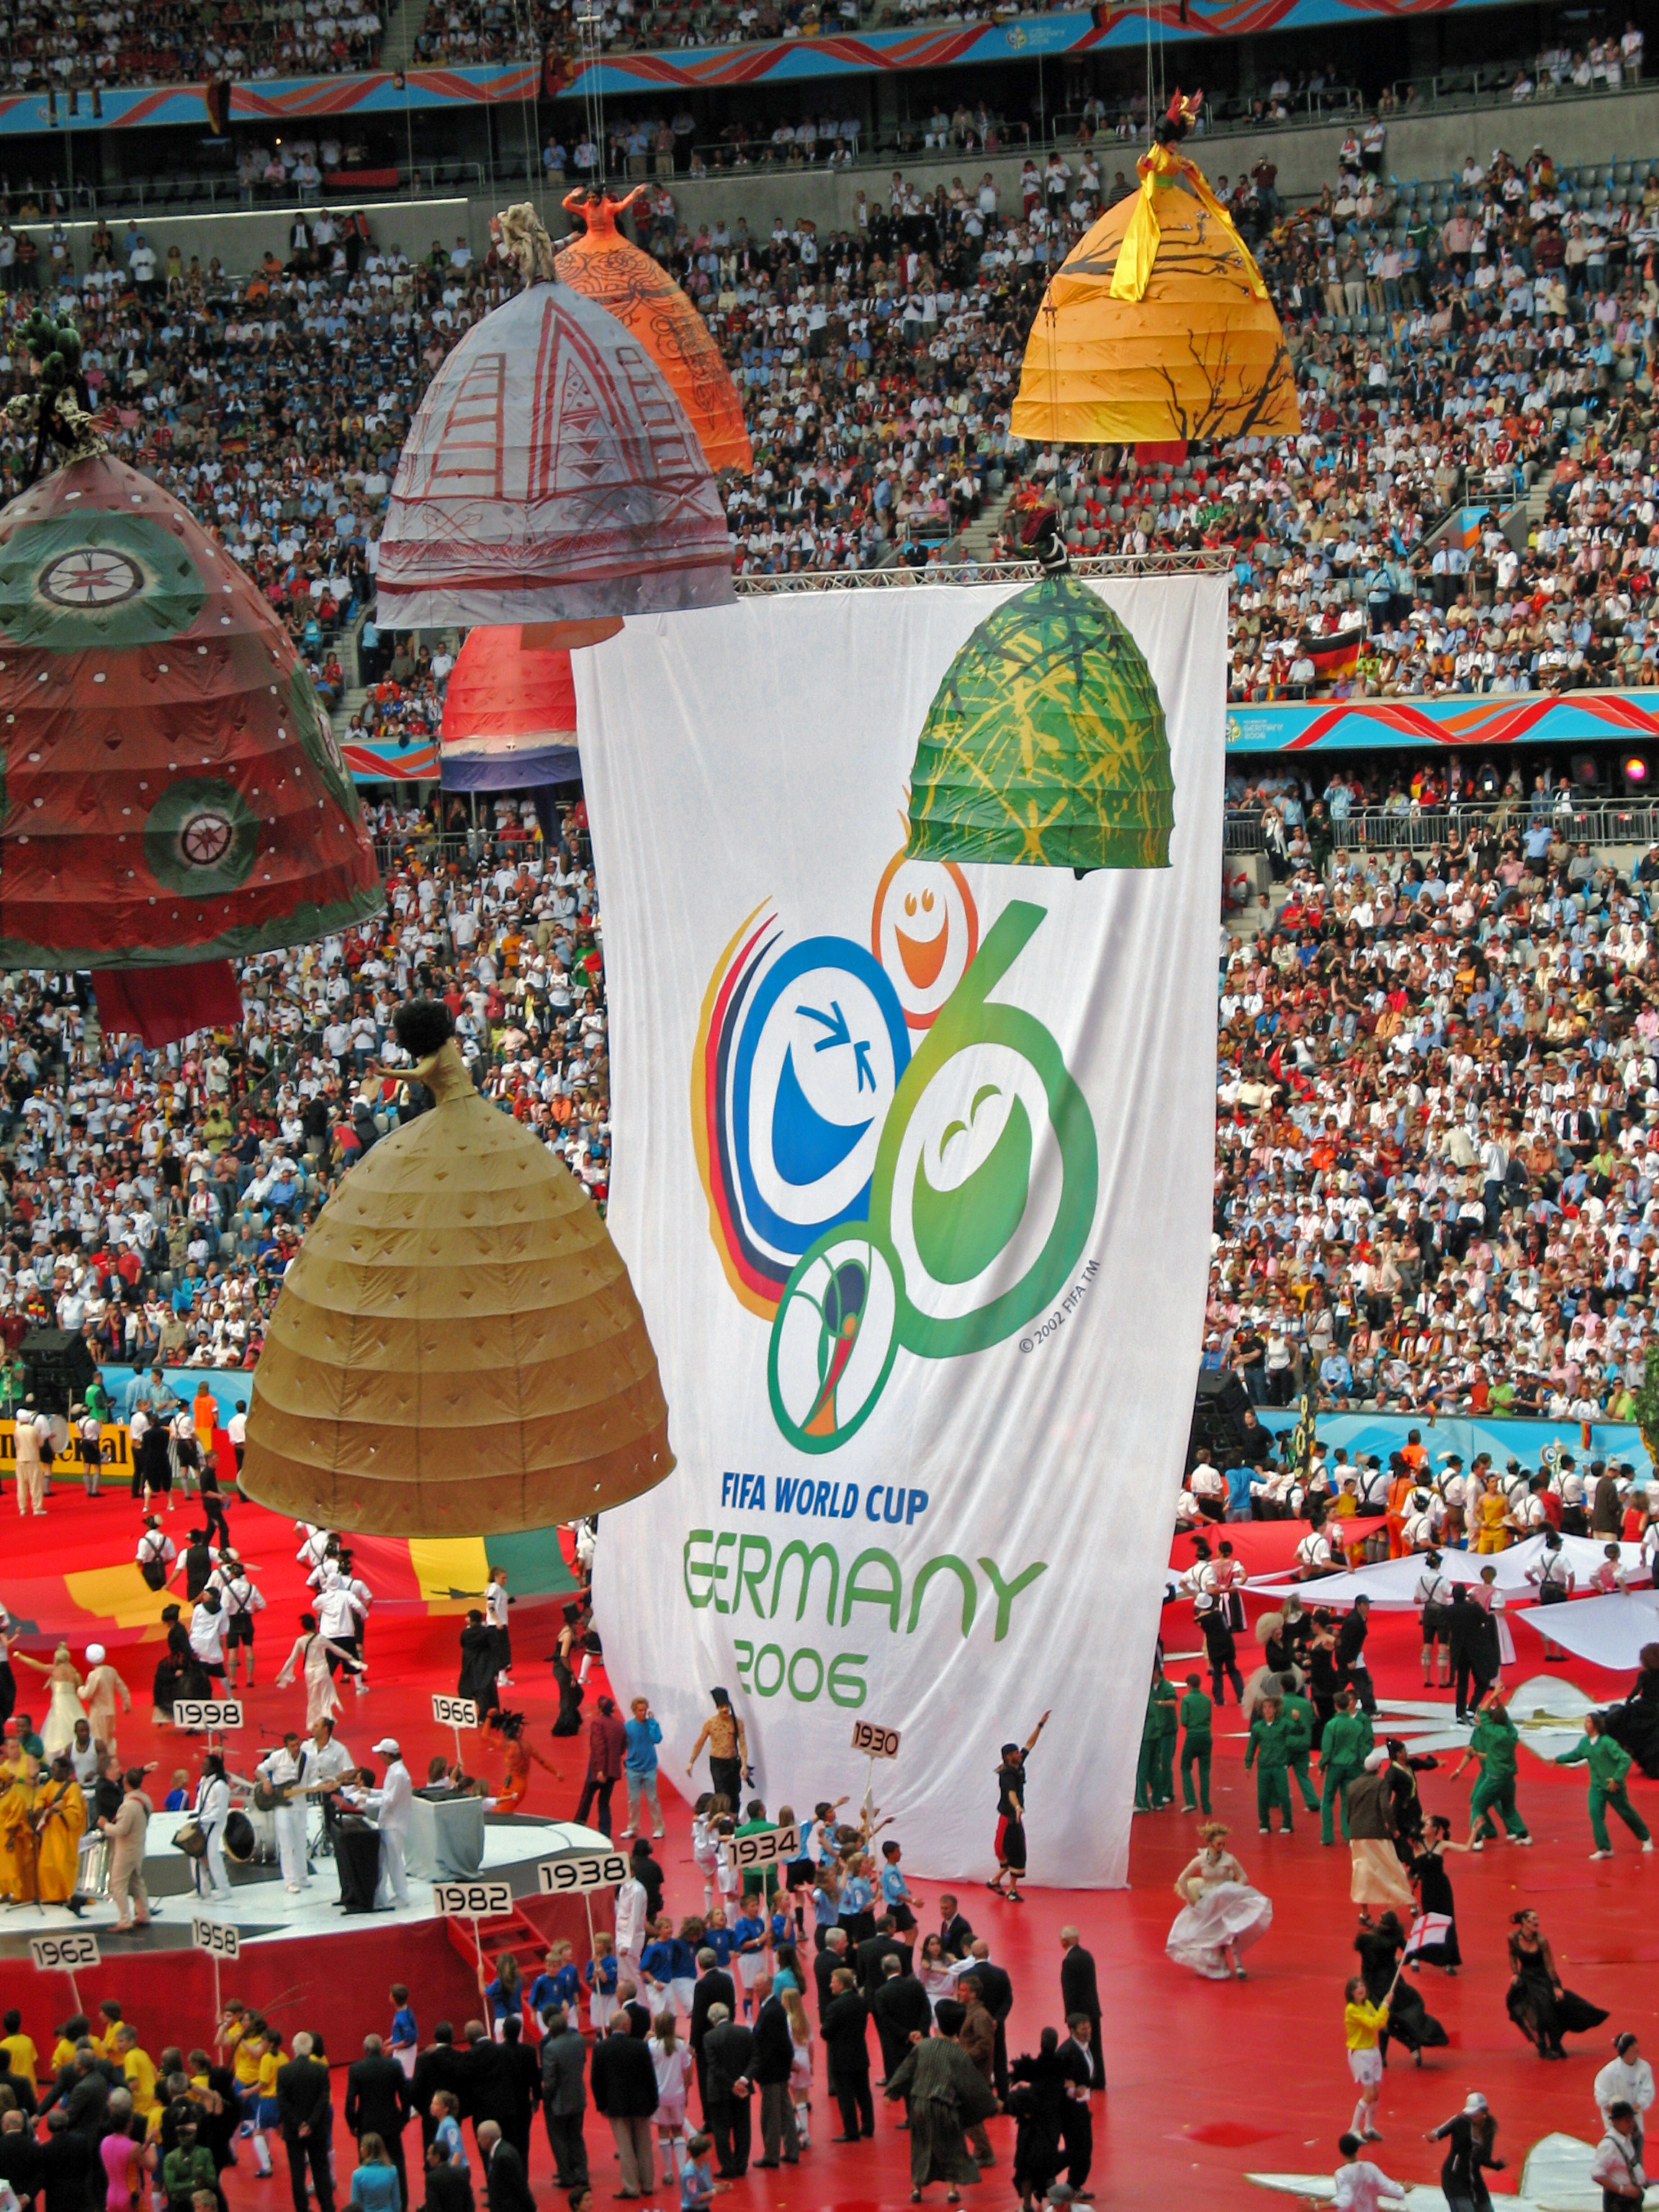 Opening ceremony of the 2006 World Cup, Germany. Credit: Franz from Saarbrücken/Flickr, CC BY 2.0